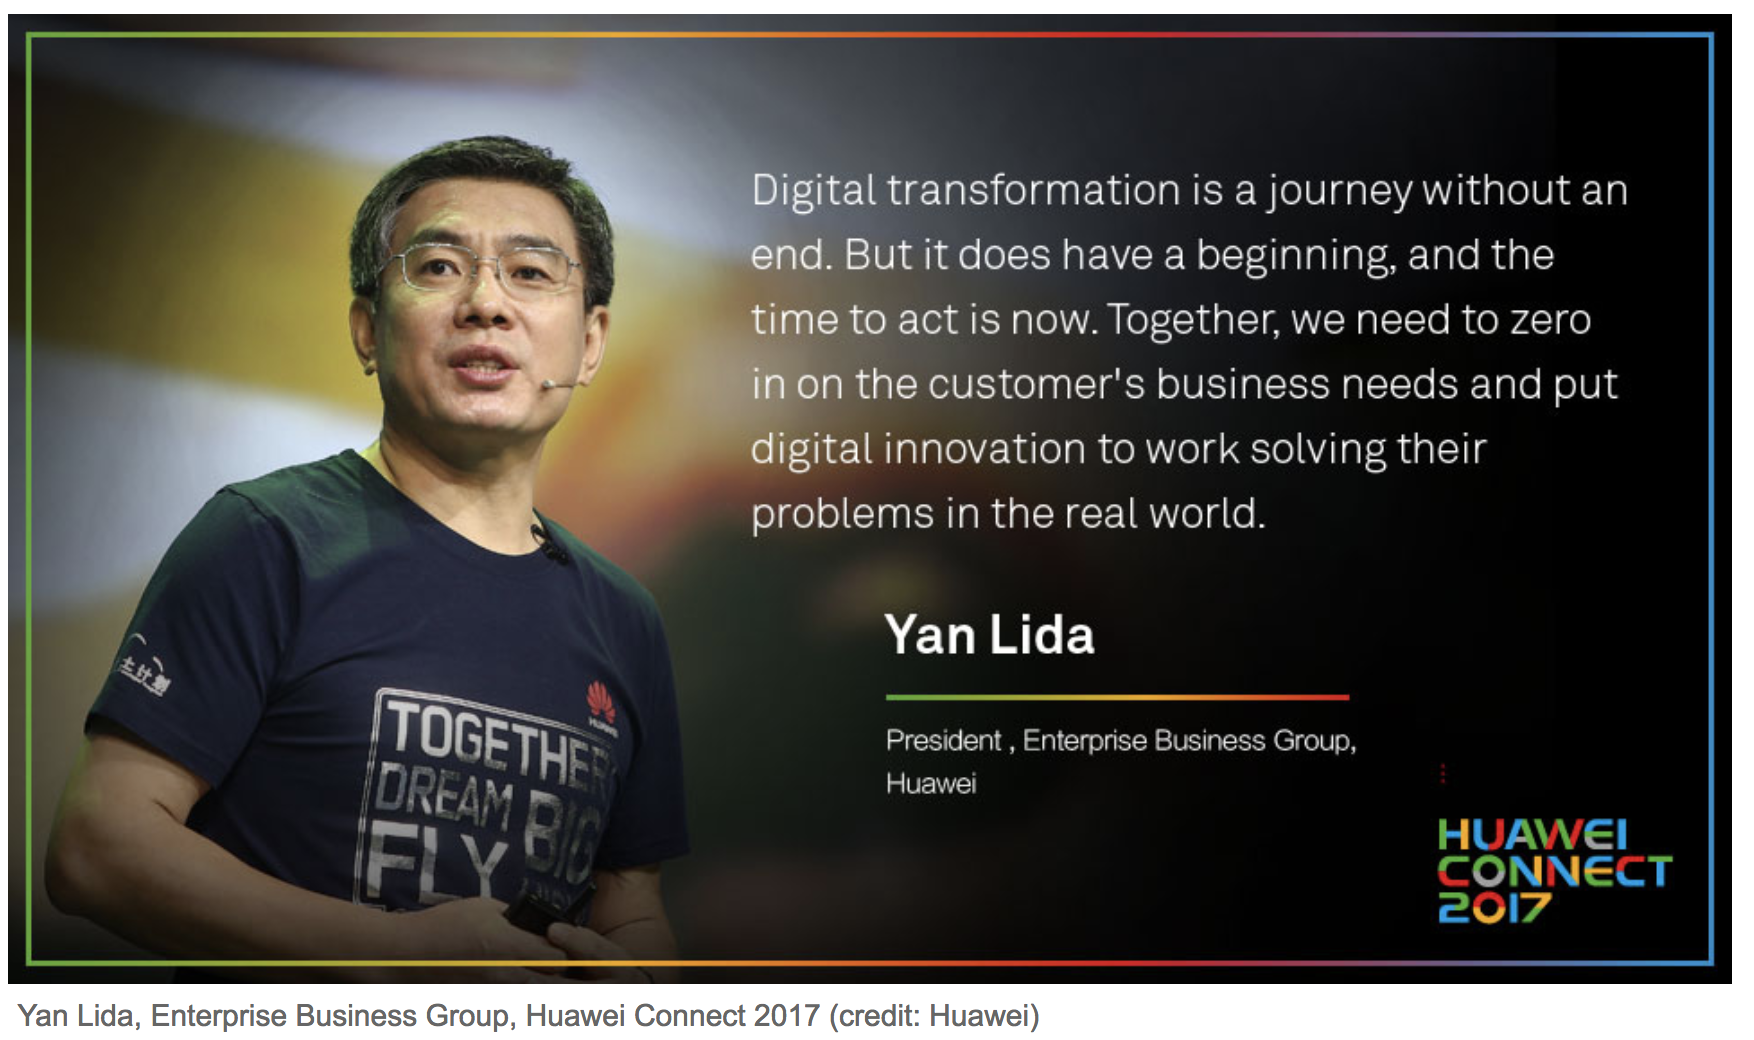 Yan Lida, Enterprise Business Group, Huawei